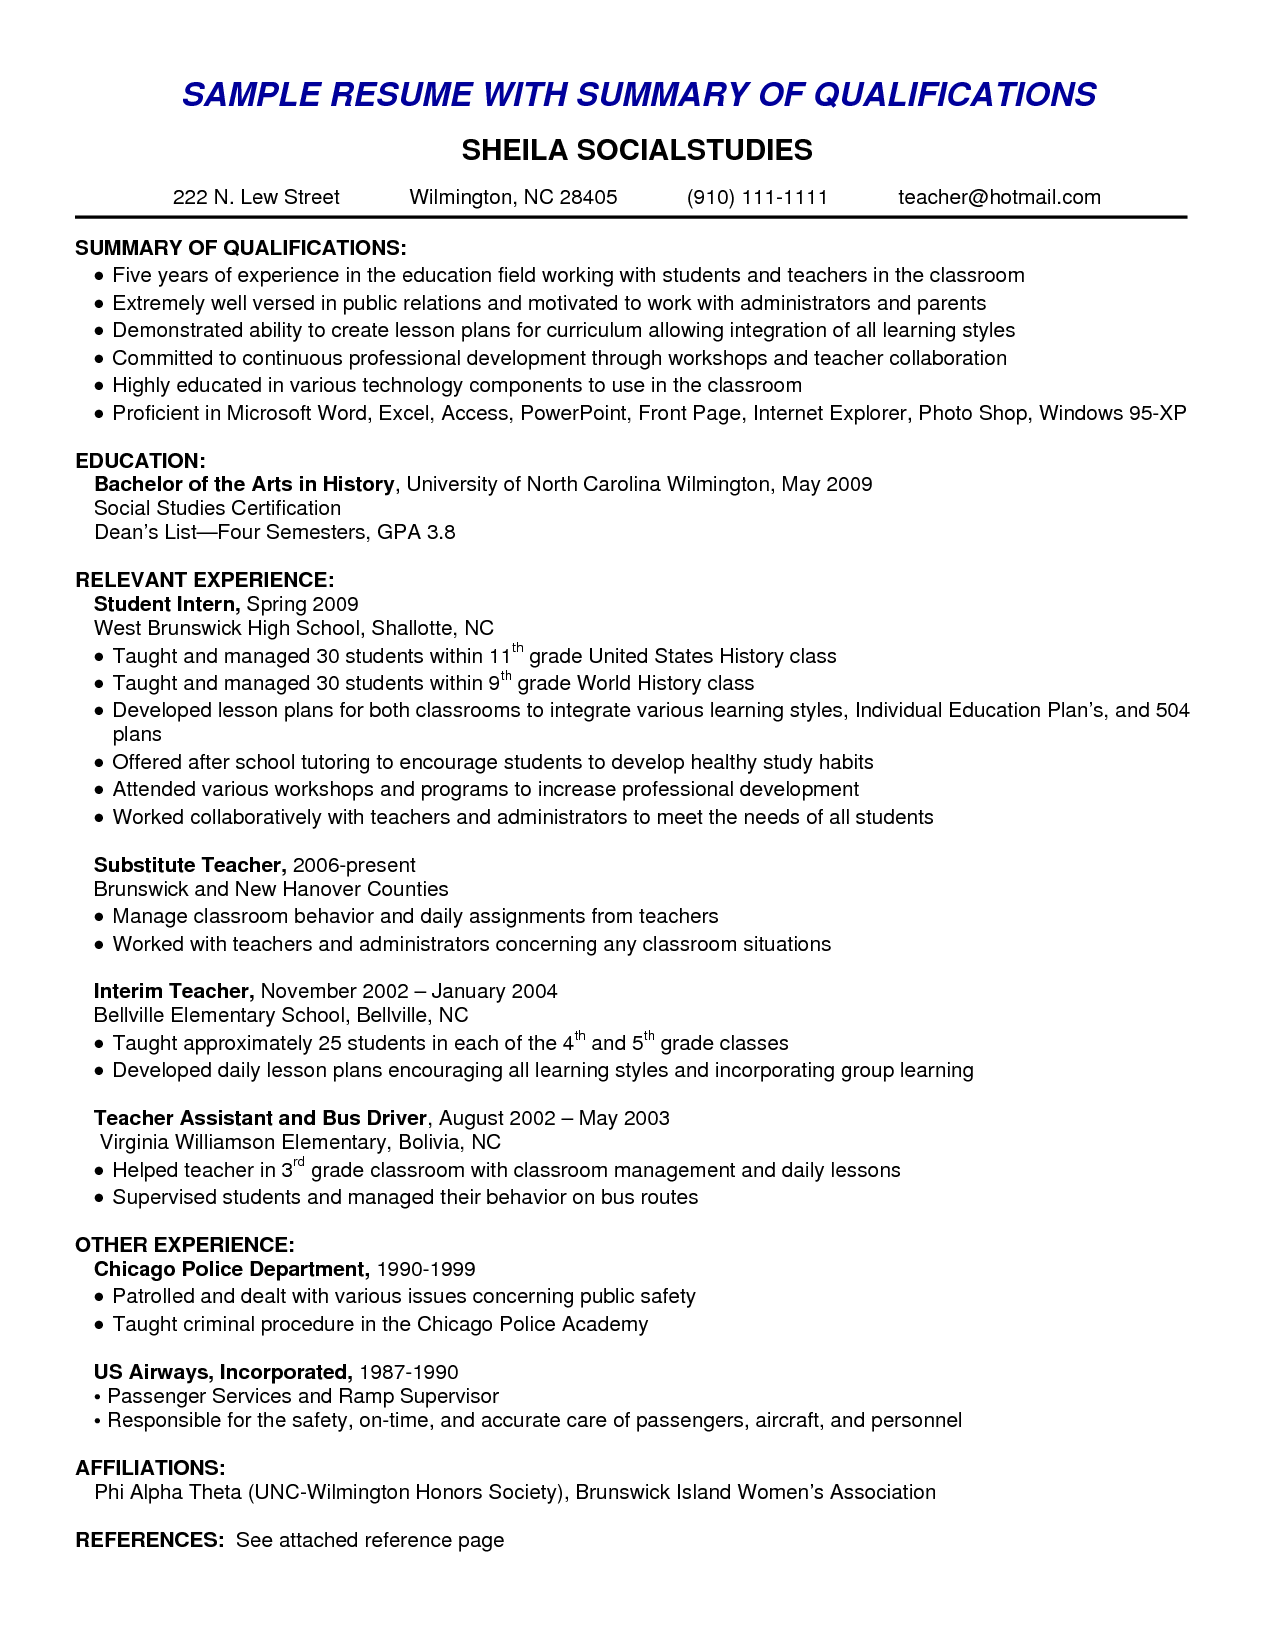 Qualifications Summary Resume Example Qualifications For Resume Example  Httpwww.resumecareer .